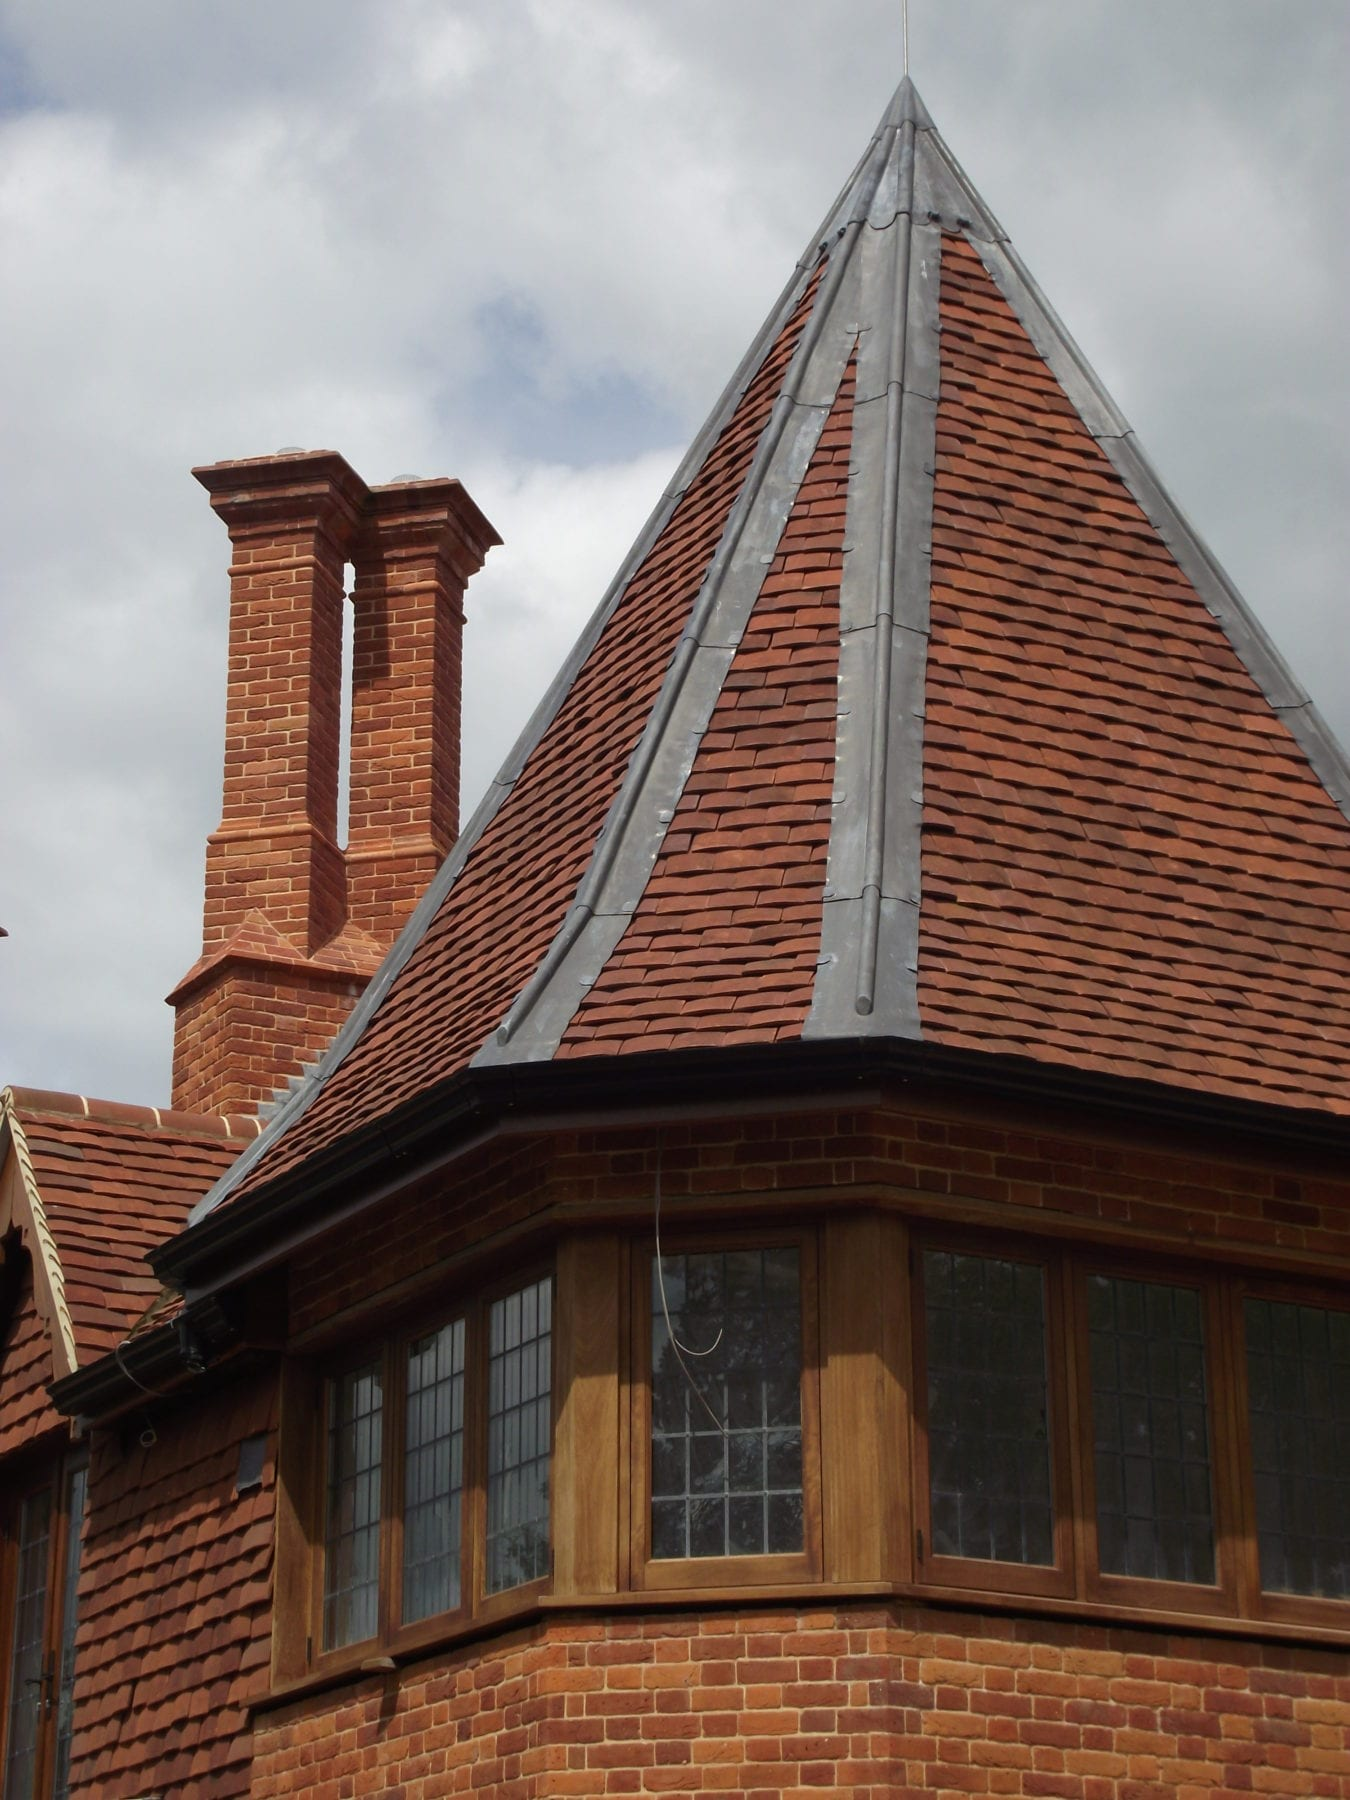 Red Clay Roof Tiles Handmade Lifestiles Built From A